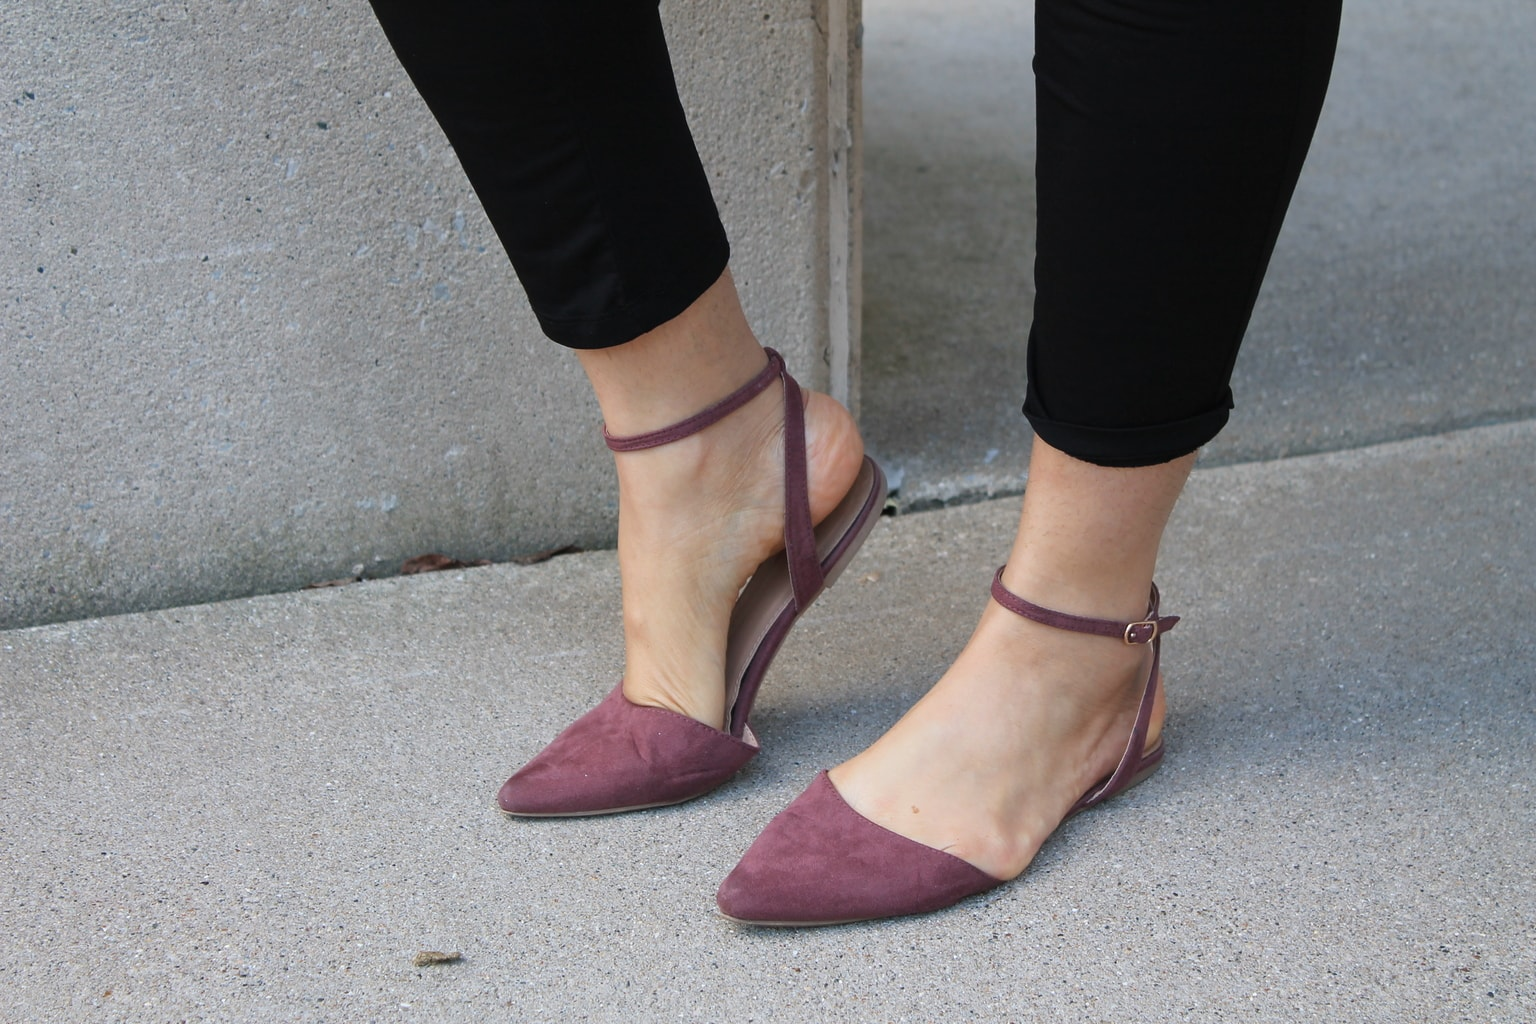 These pointed-toe flats are mauve and have an ankle strap.